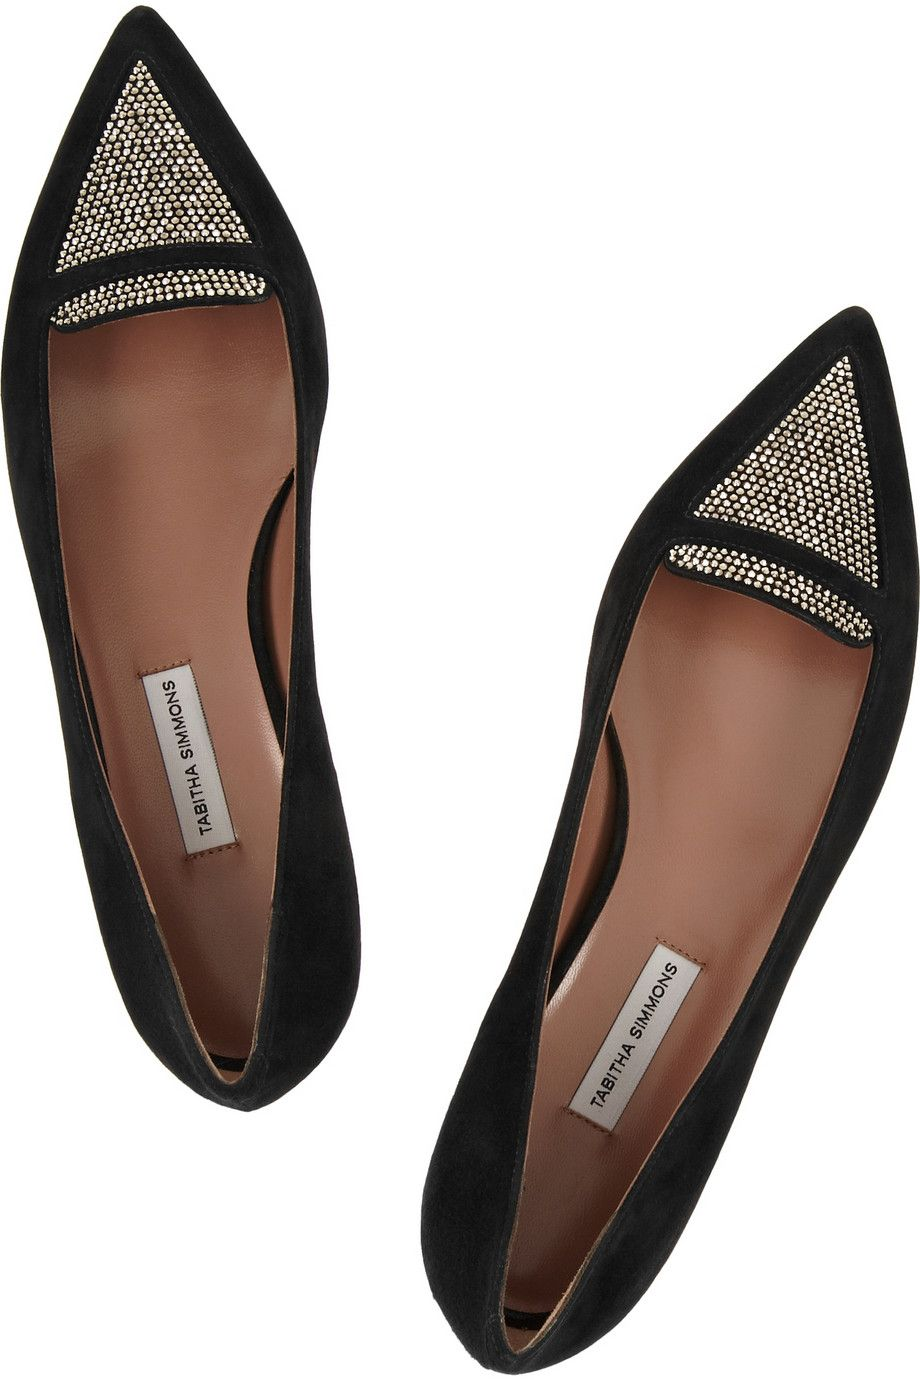 Tabitha Simmons Crystal Suede Flats for sale 2014 ow30mNMQd